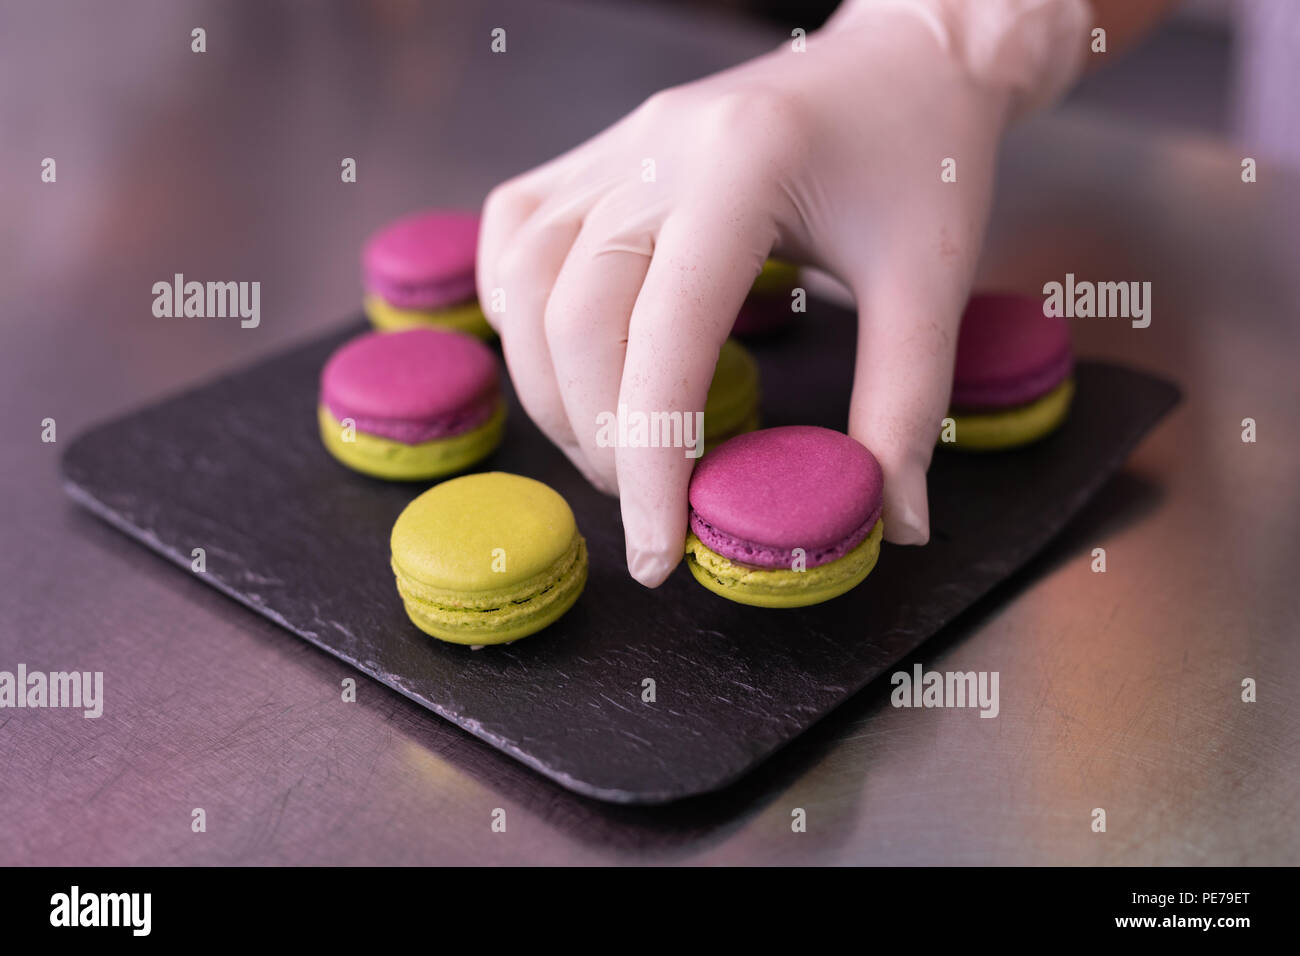 Master of confectionary putting nice macaroons on black plate - Stock Image